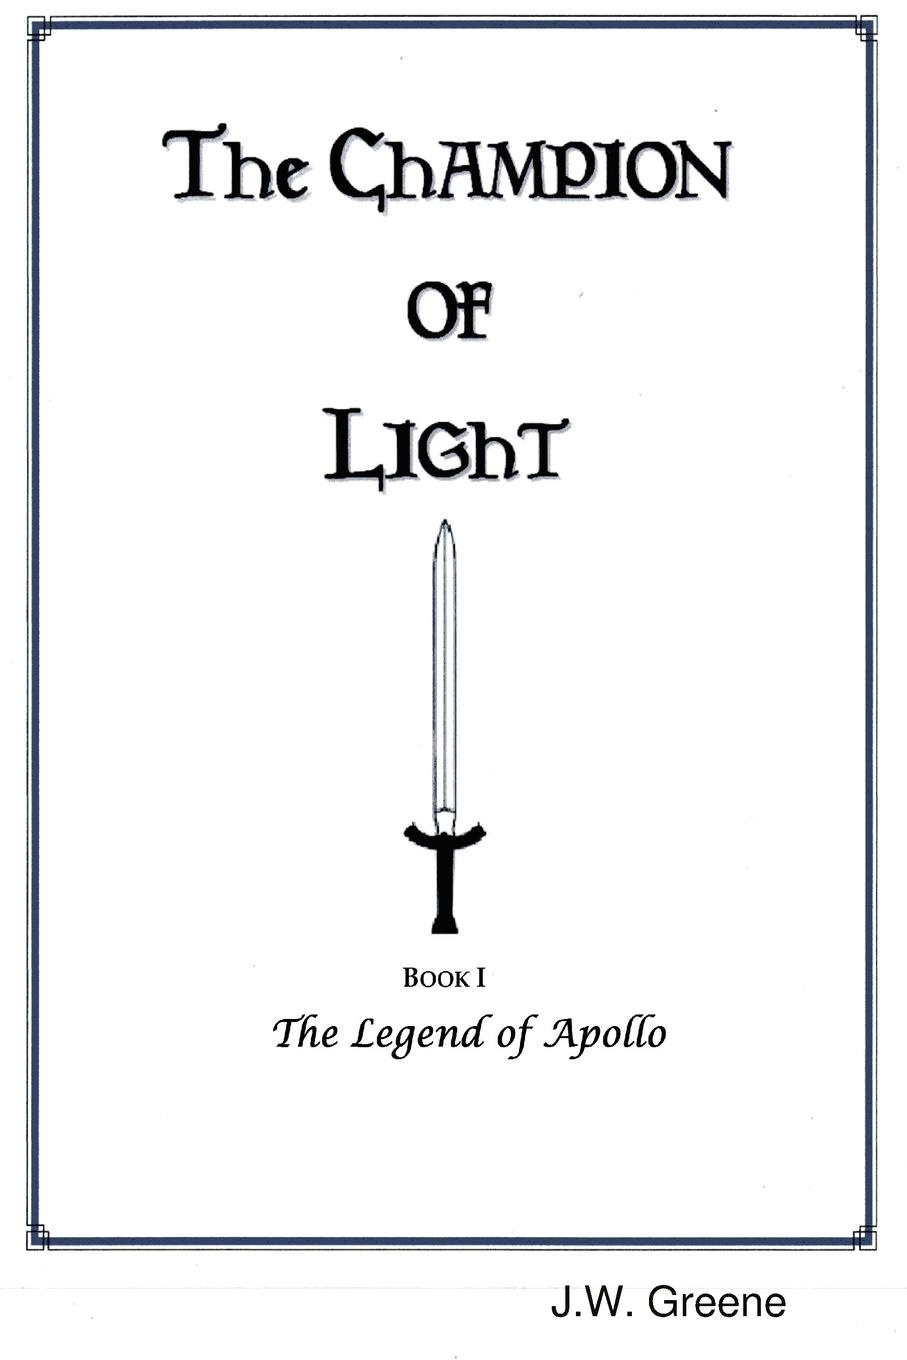 J.W. Greene The Champion of Light, Book I. The Legend of Apollo the age of oversupply